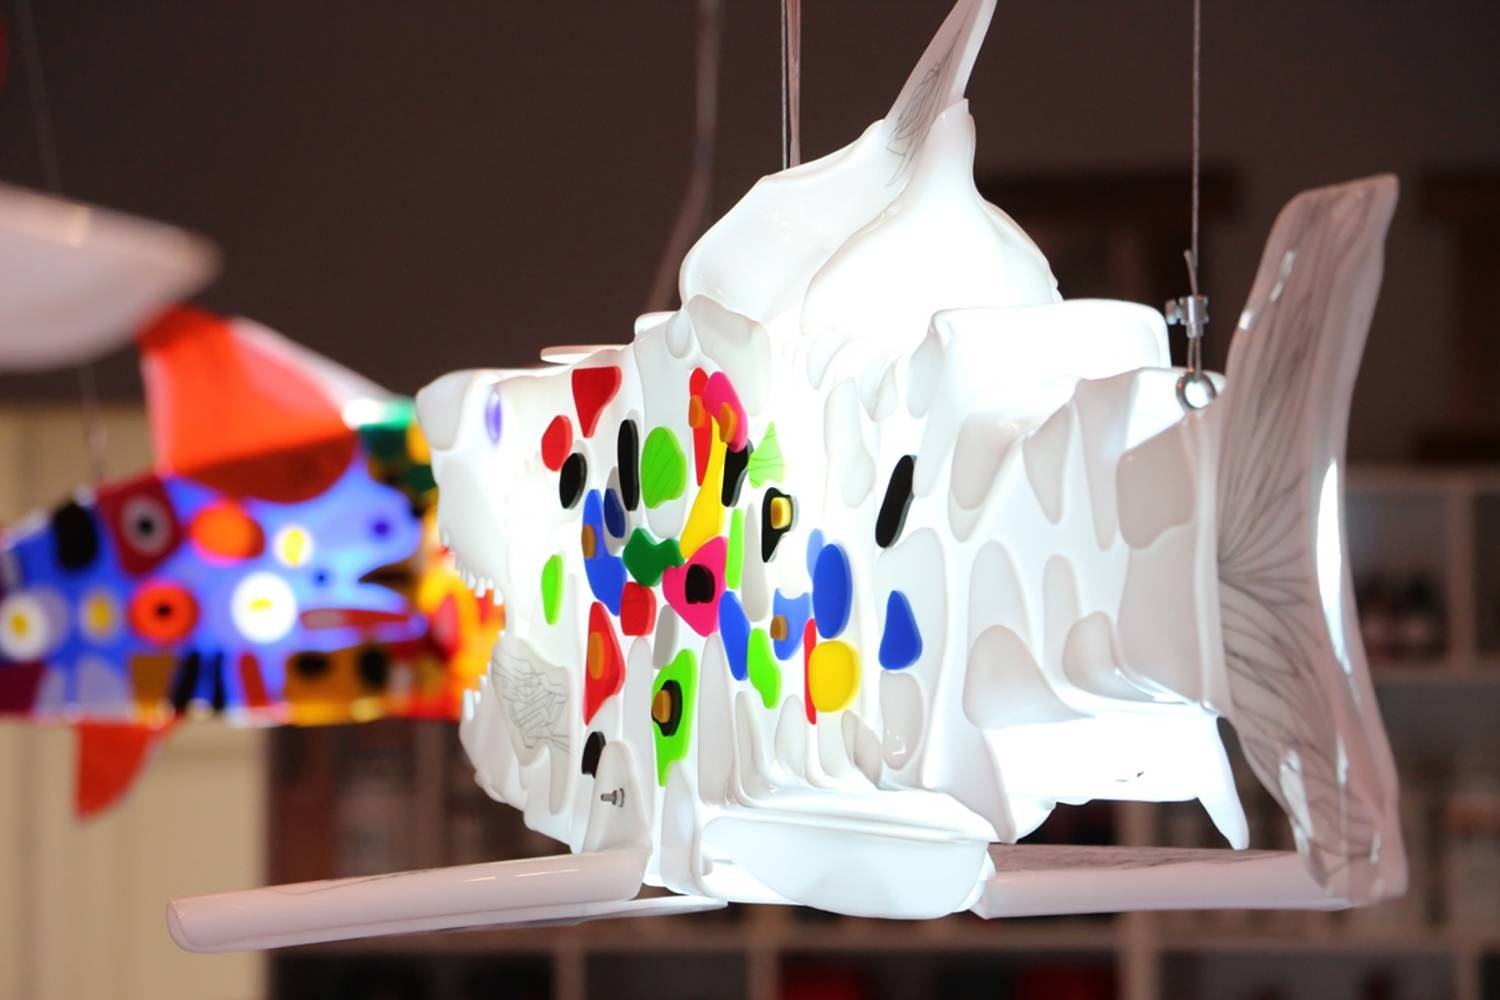 Constant movement is a light sculpture made by Marko Gavrilovic.